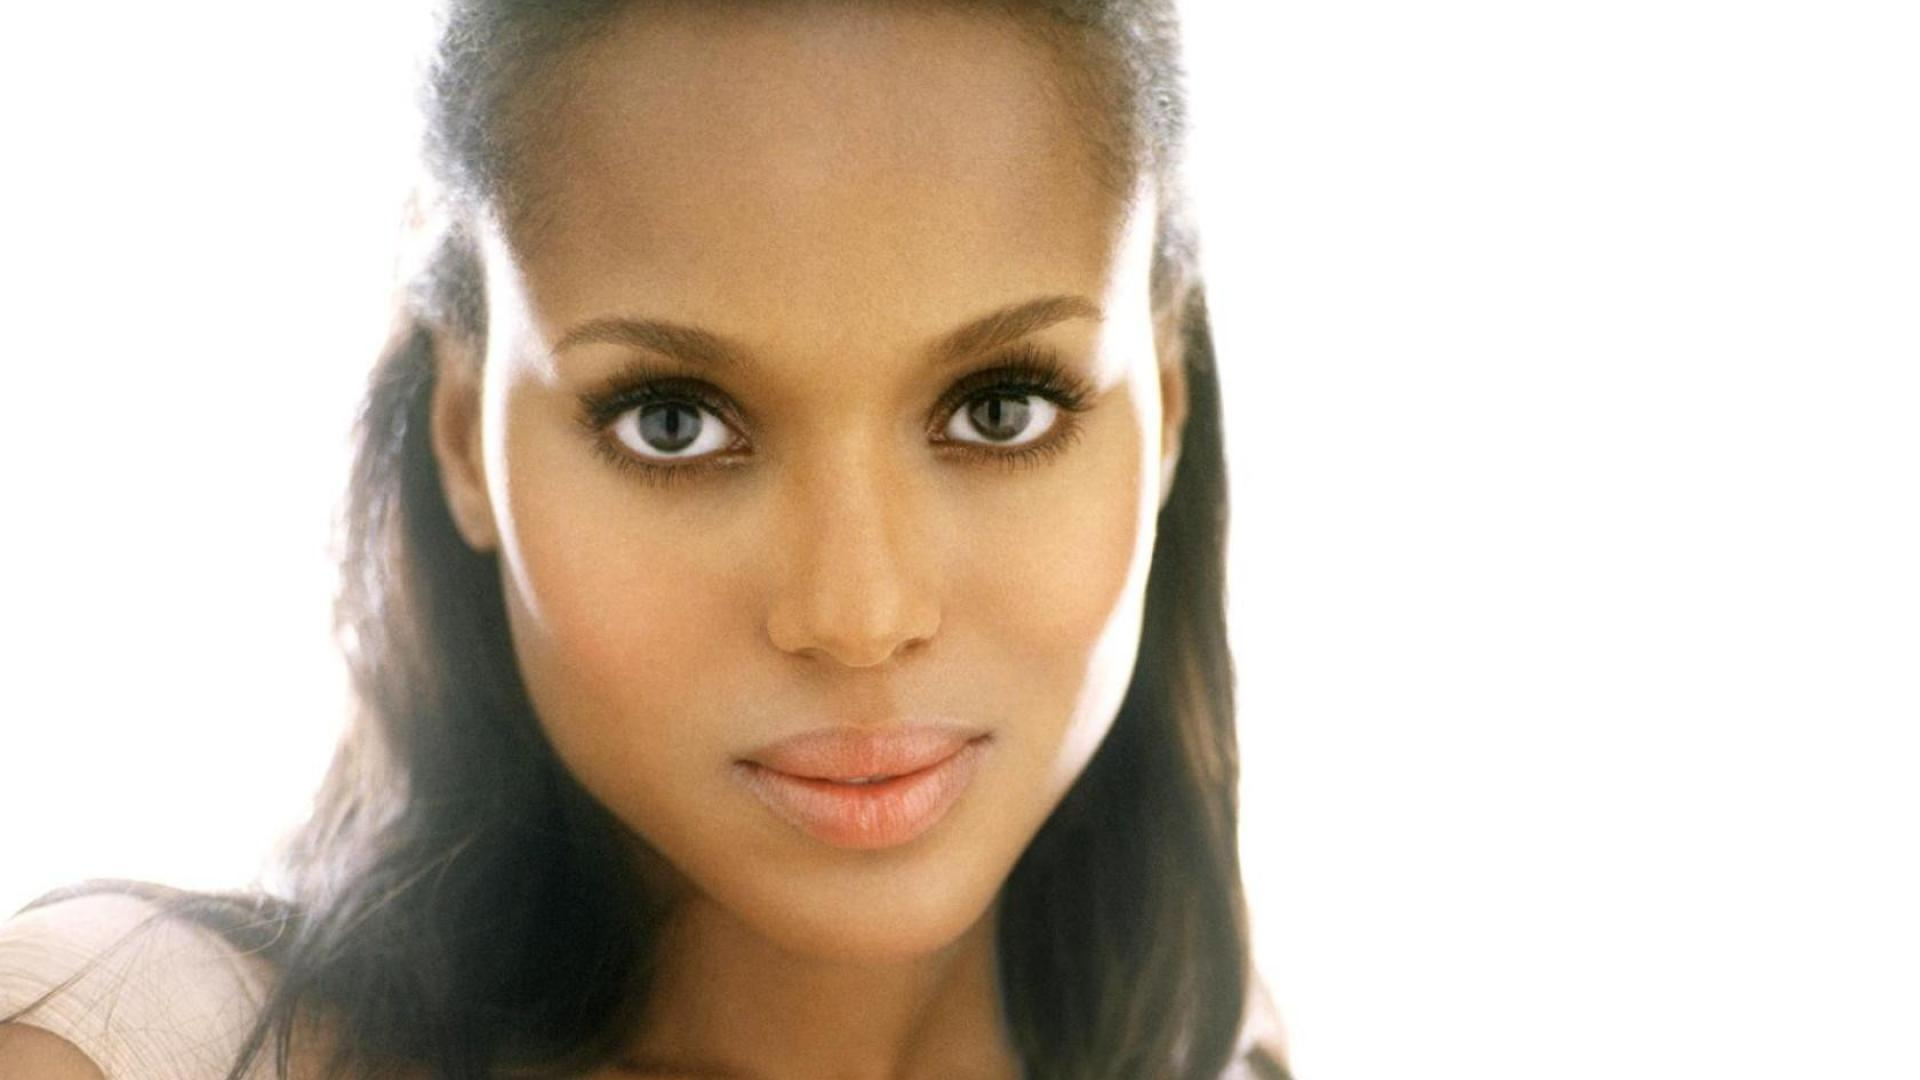 Brown actors faces white backgrounds kerry washington wallpapers